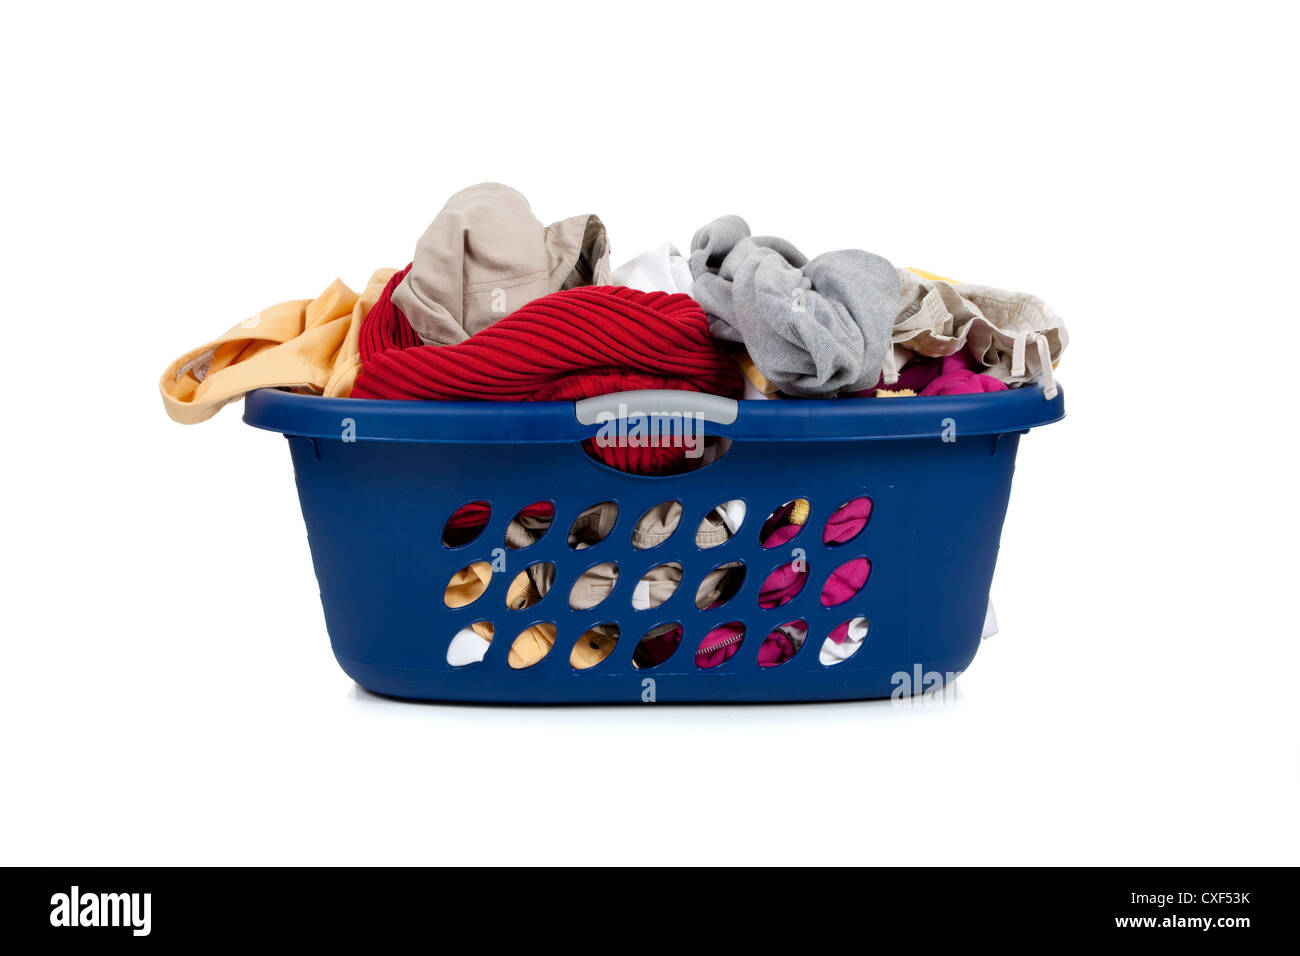 Blue laundry basket full of dirty clothes stock photo royalty free image 50735095 alamy - Hamper for dirty clothes ...